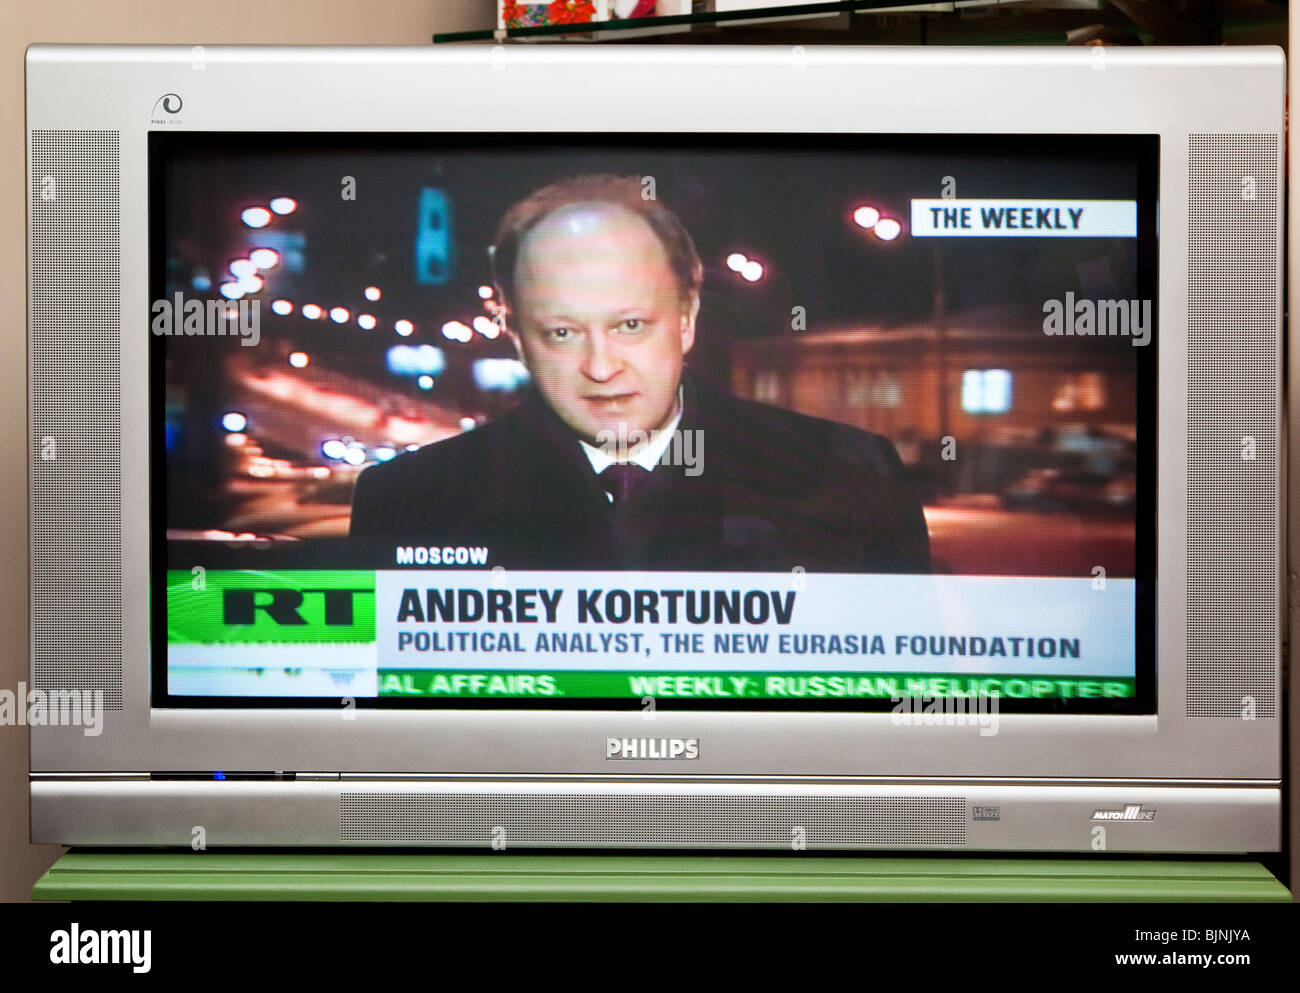 tv screen showing russia today rt news channel stock photo 28750046